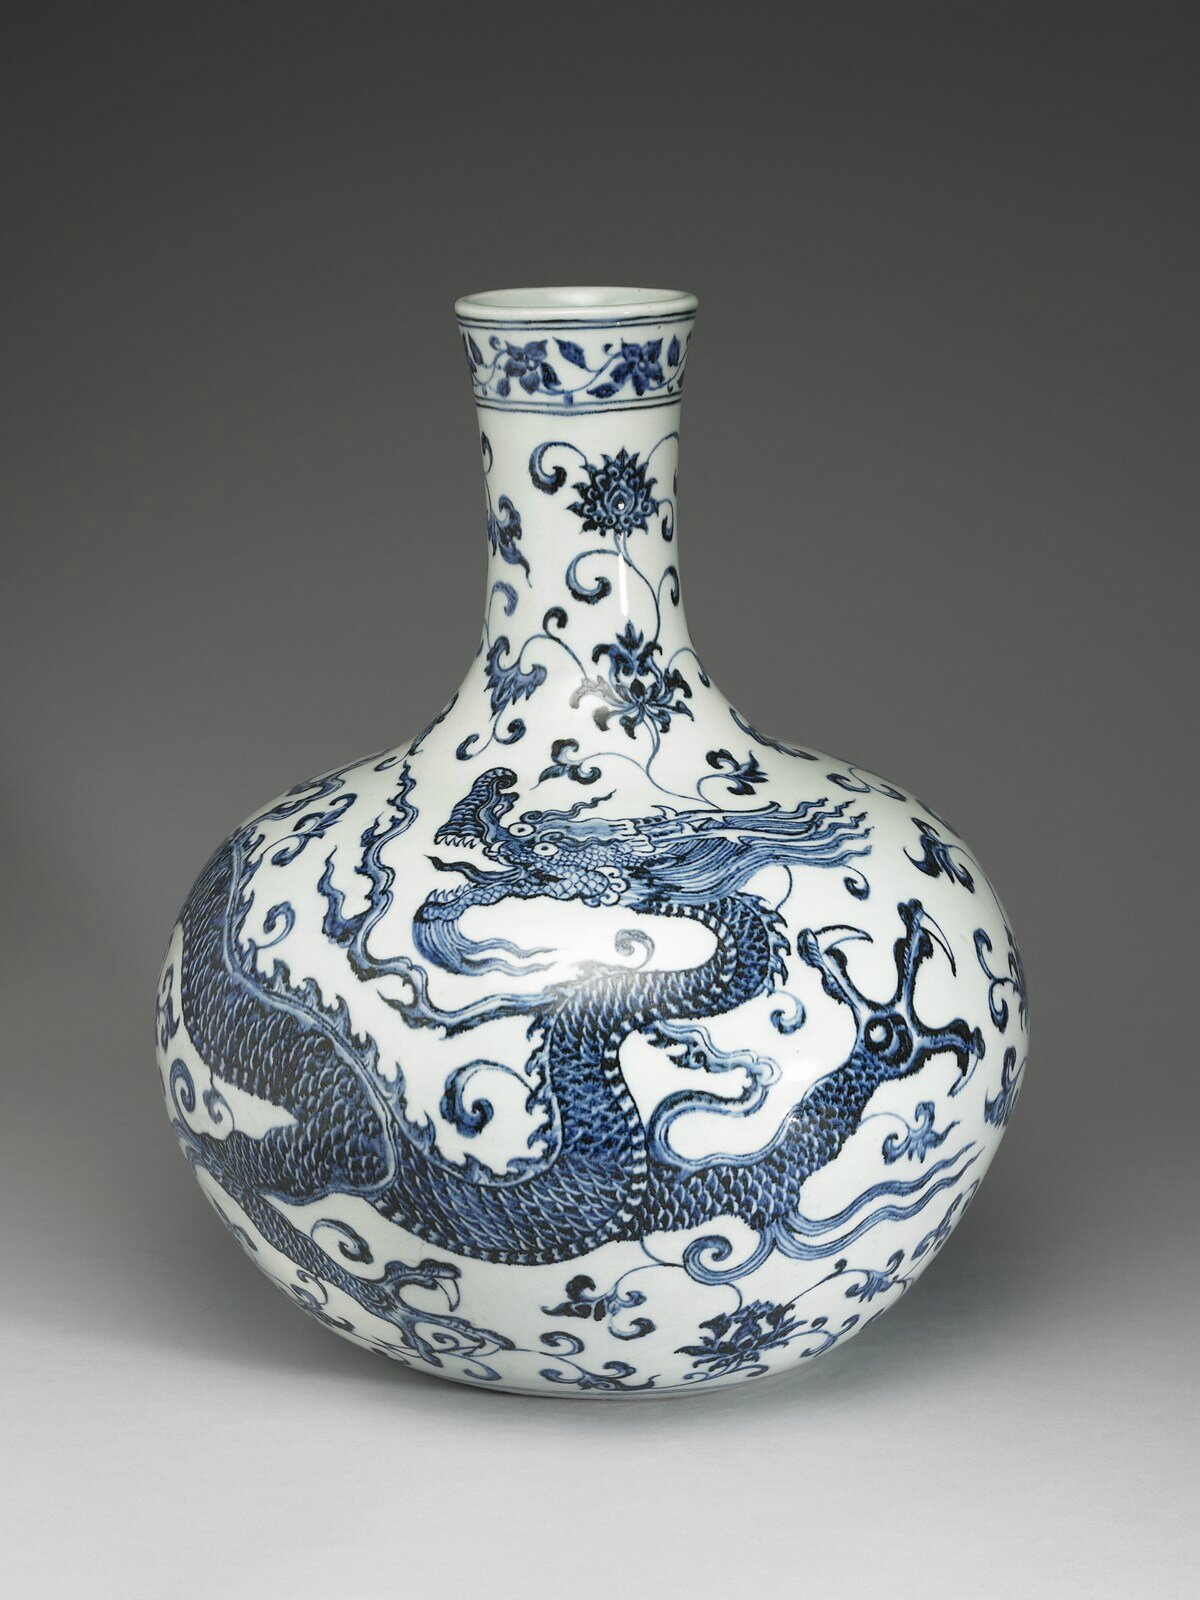 Vase with Flying Dragon, Ming dynasty, reign of the Yongle emperor, 1403-24